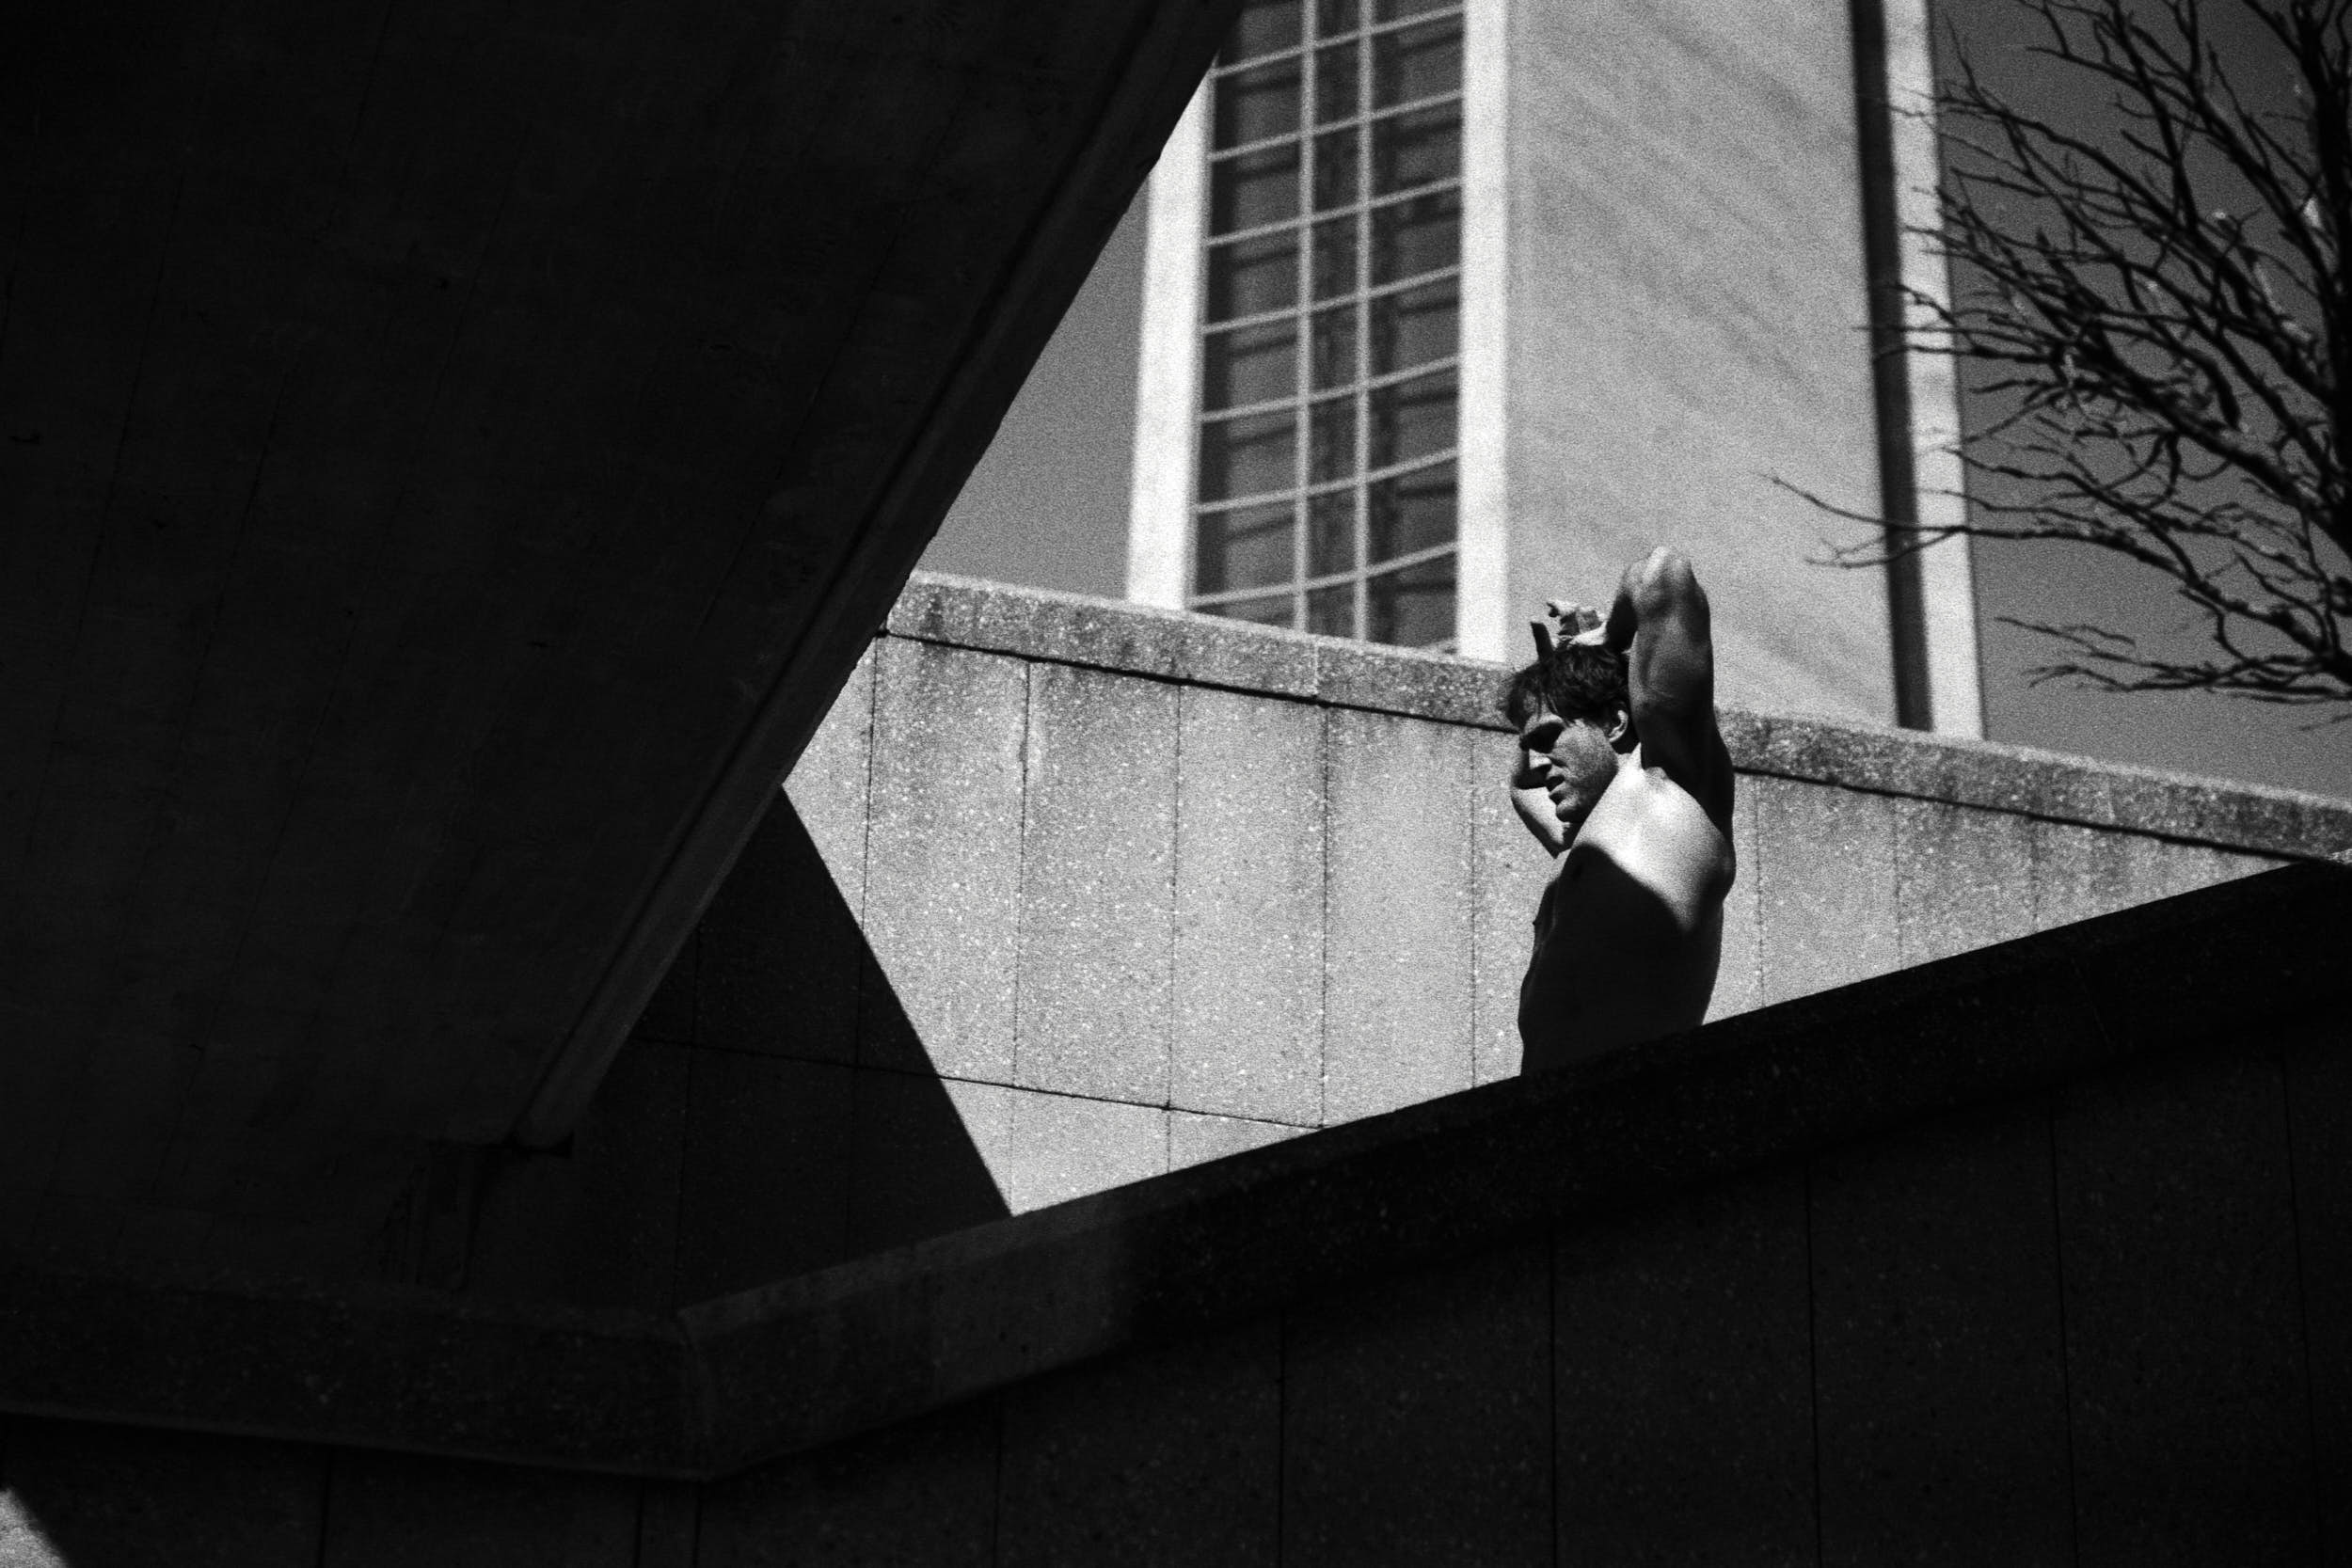 Geometric composition with deep shadows: man catching the breath in between training rounds.